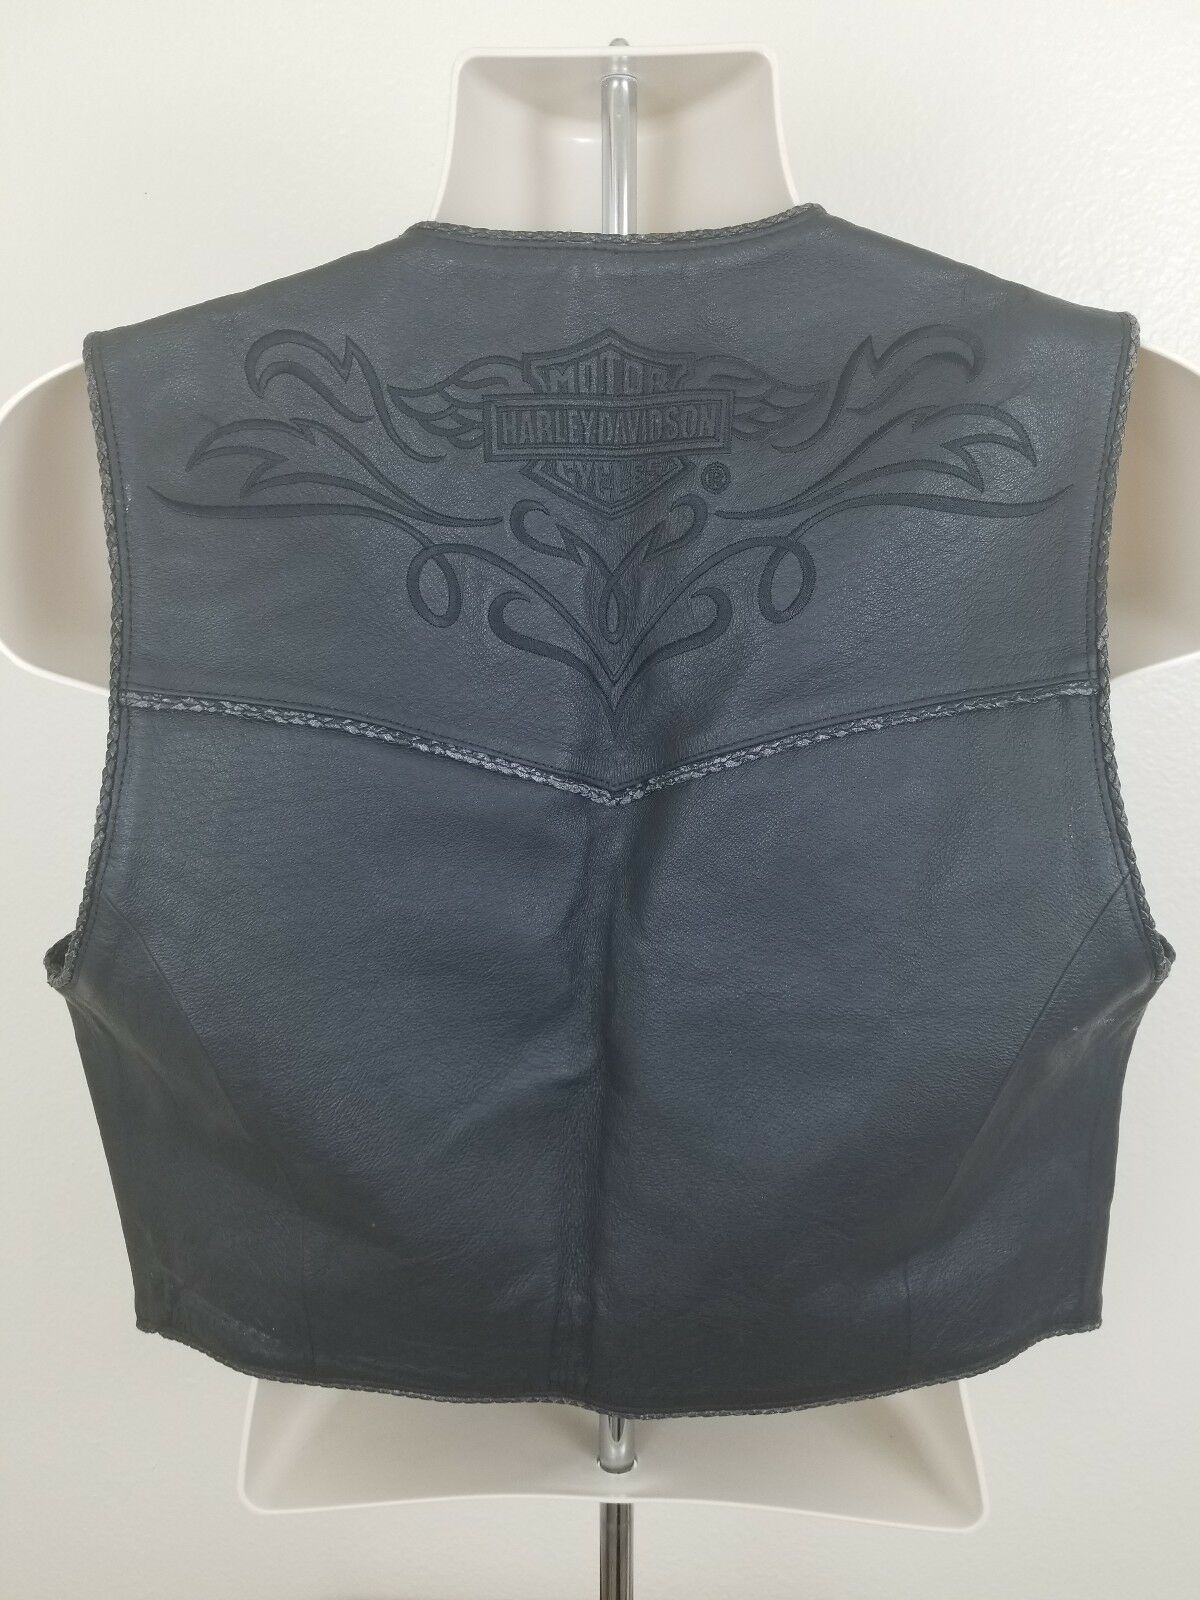 L Womens Harley Davidson Motor Cycles Genuine Genuine Genuine Leather Vest 103819 Live To Ride 70b328